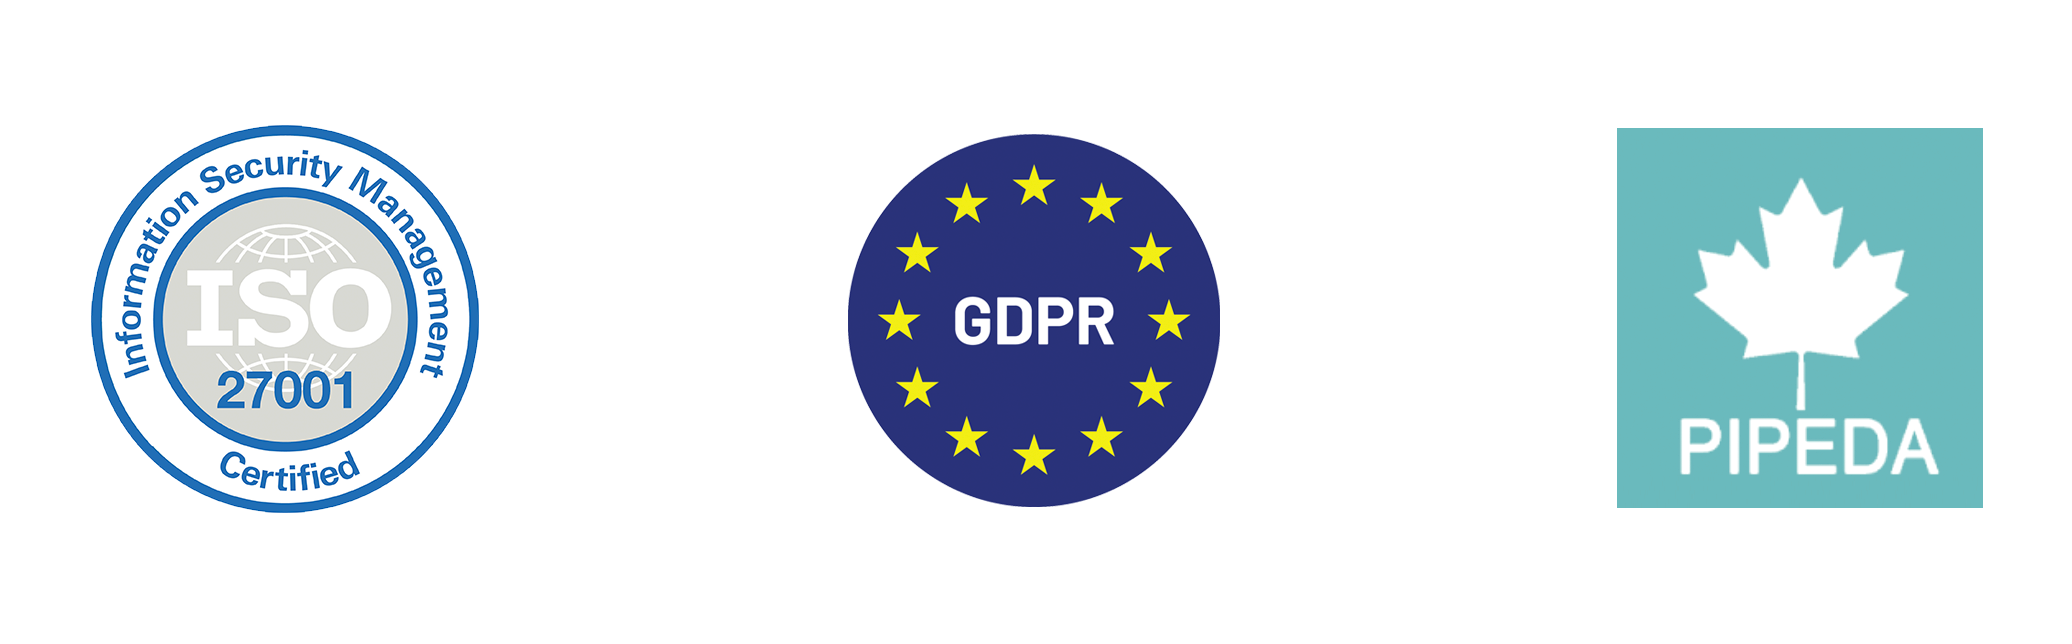 Lambda-Services-Hosting-Certifications-iso27001-pipeda-gdpr